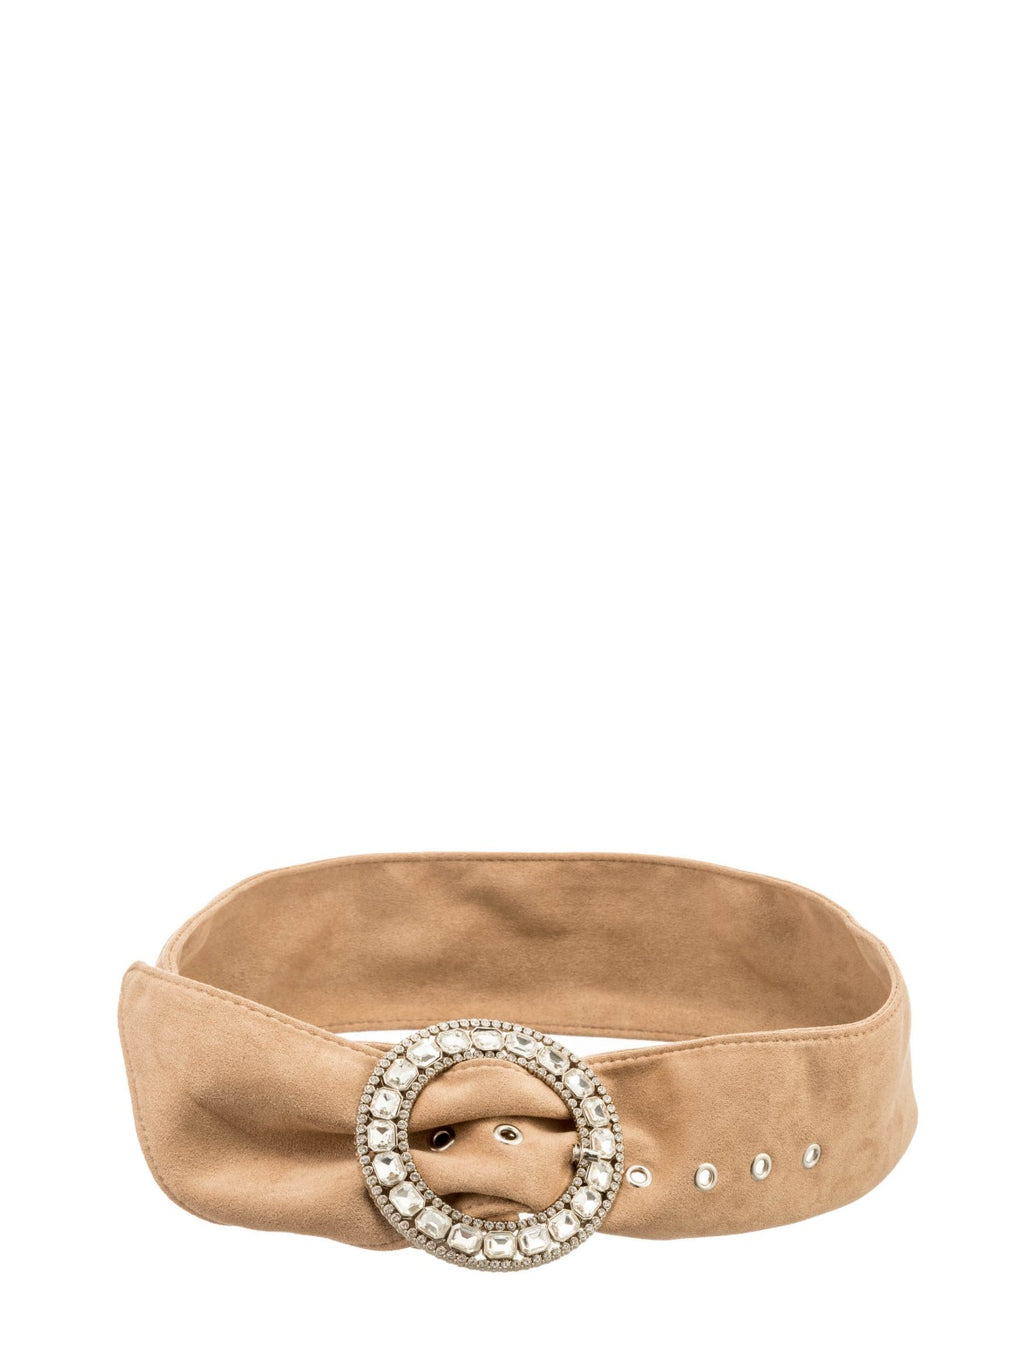 Tan Suedette Belt with Diamente Buckle